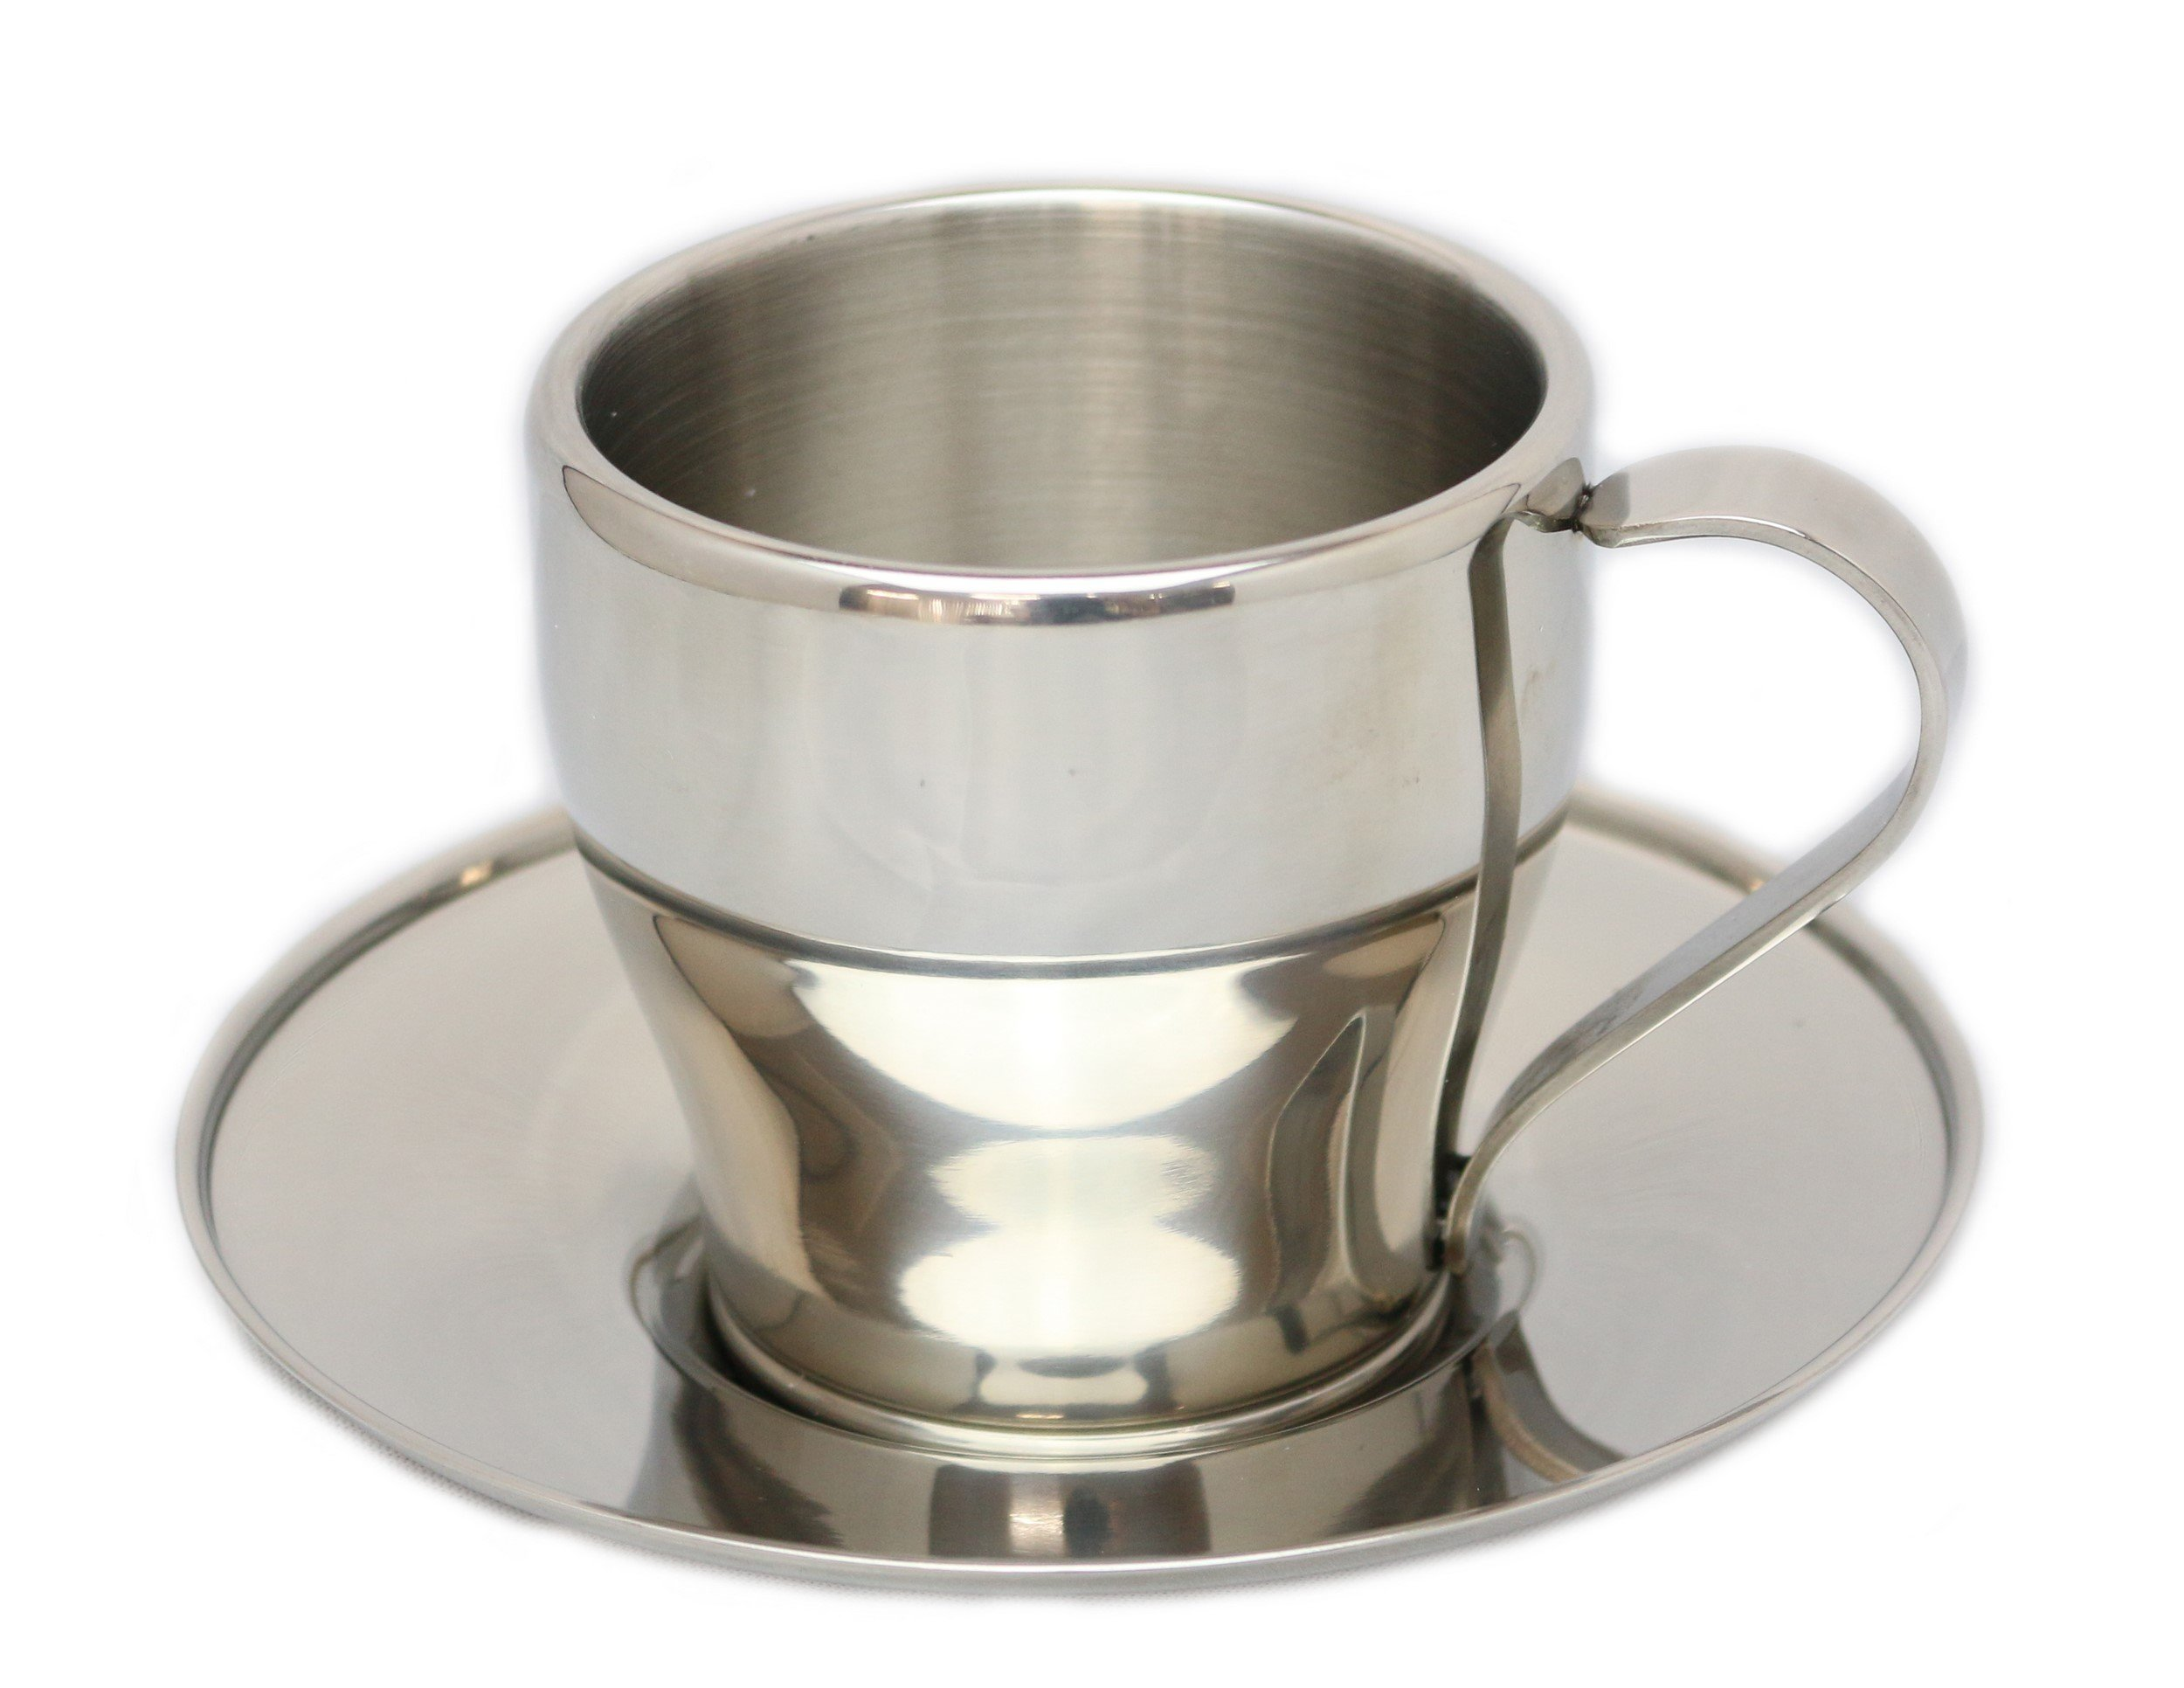 Pearl Argo double stainless coffee cup and saucer 160ml MK-4137 (japan import)